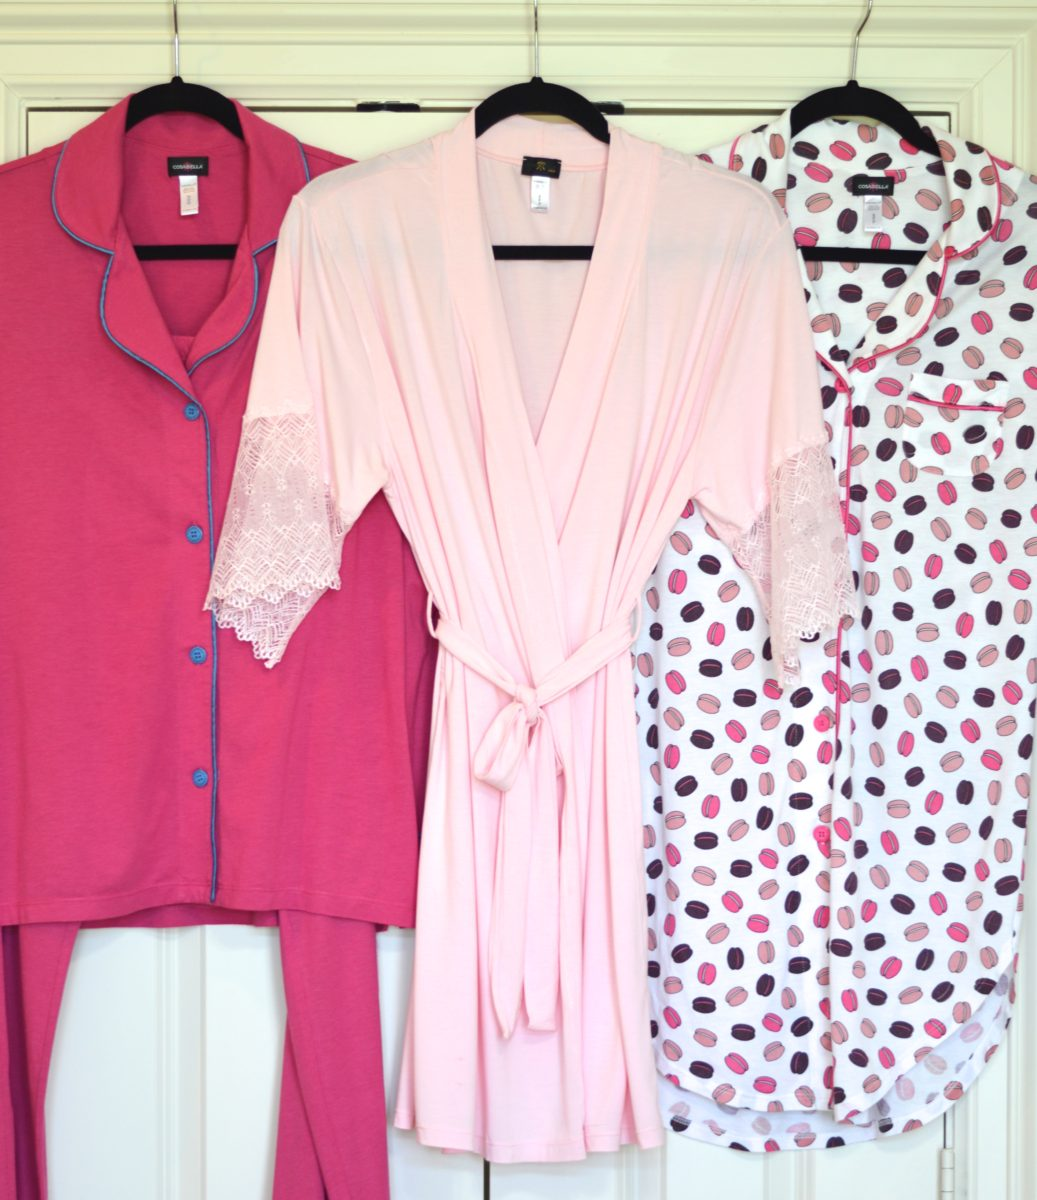 maternity style, what to pack the hospital when having a baby